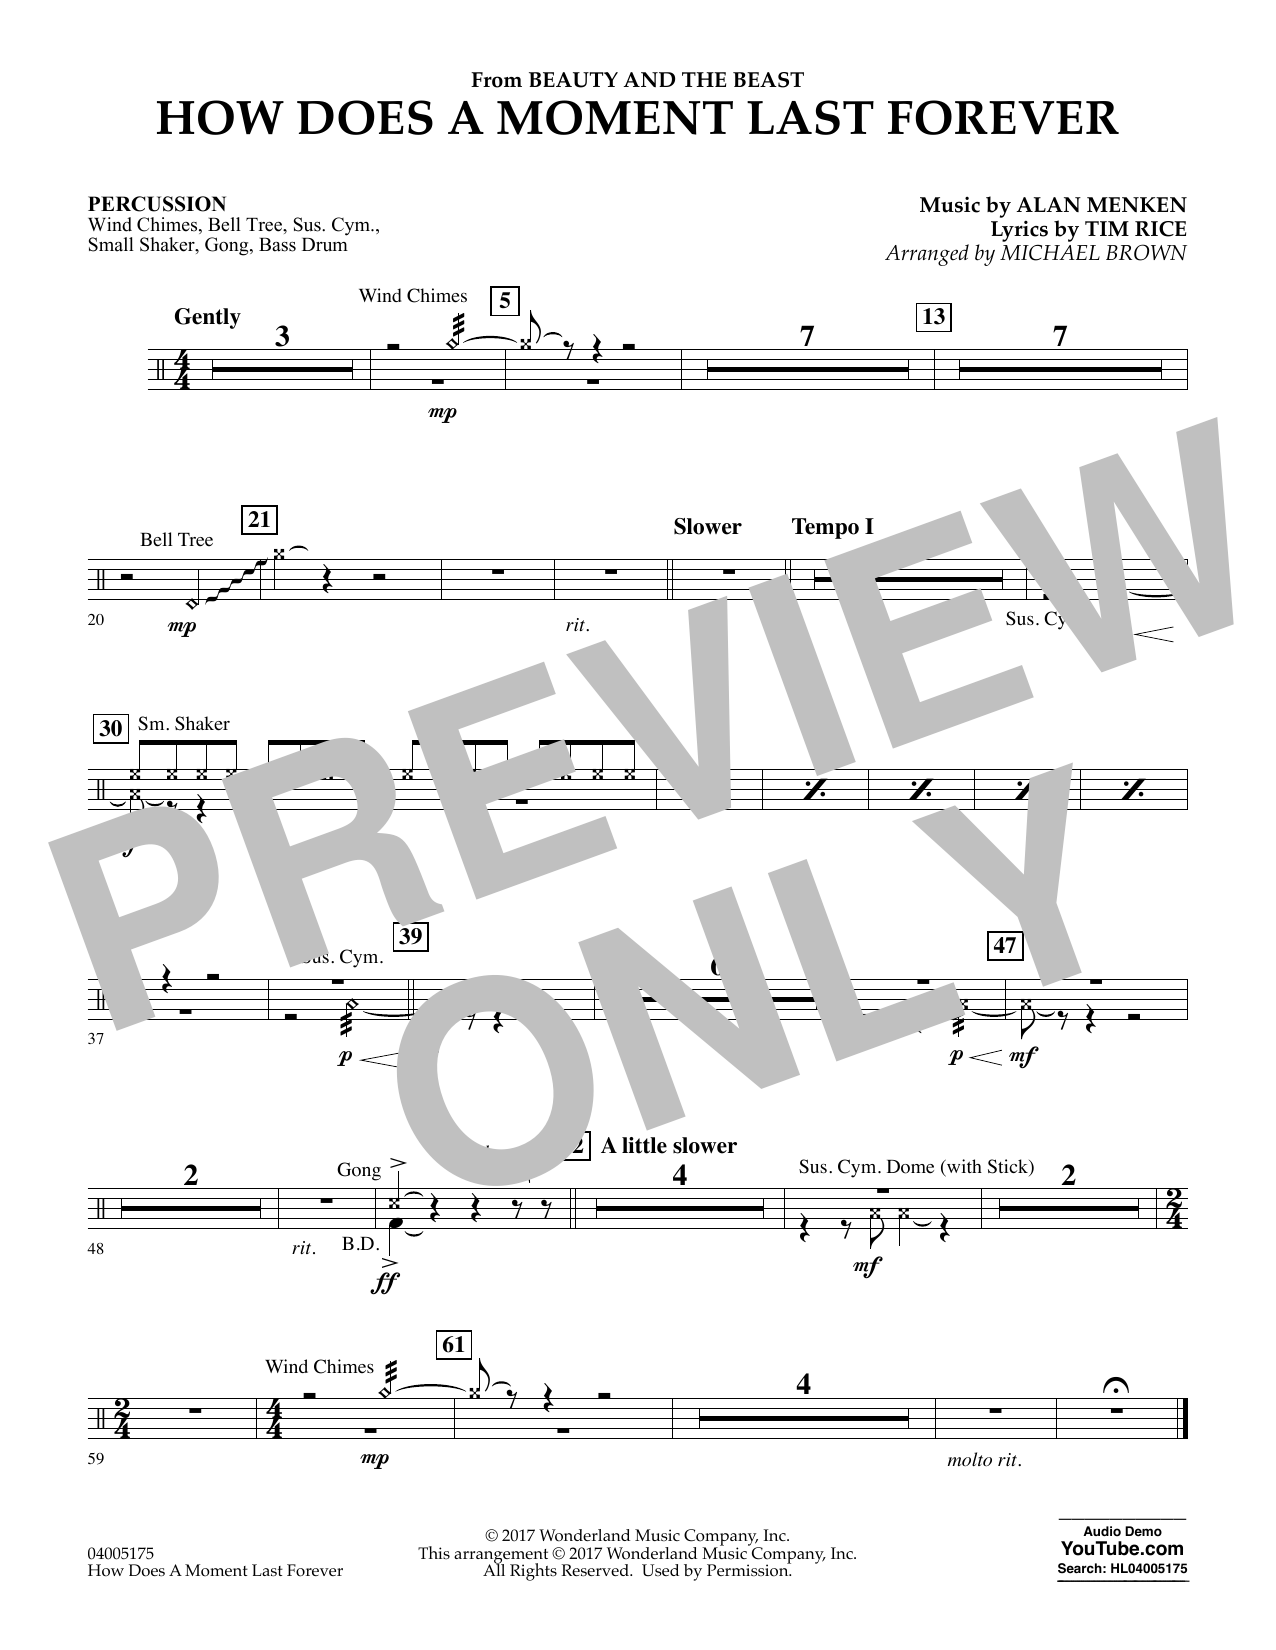 Michael Brown How Does a Moment Last Forever (from Beauty and the Beast) - Percussion sheet music notes and chords. Download Printable PDF.